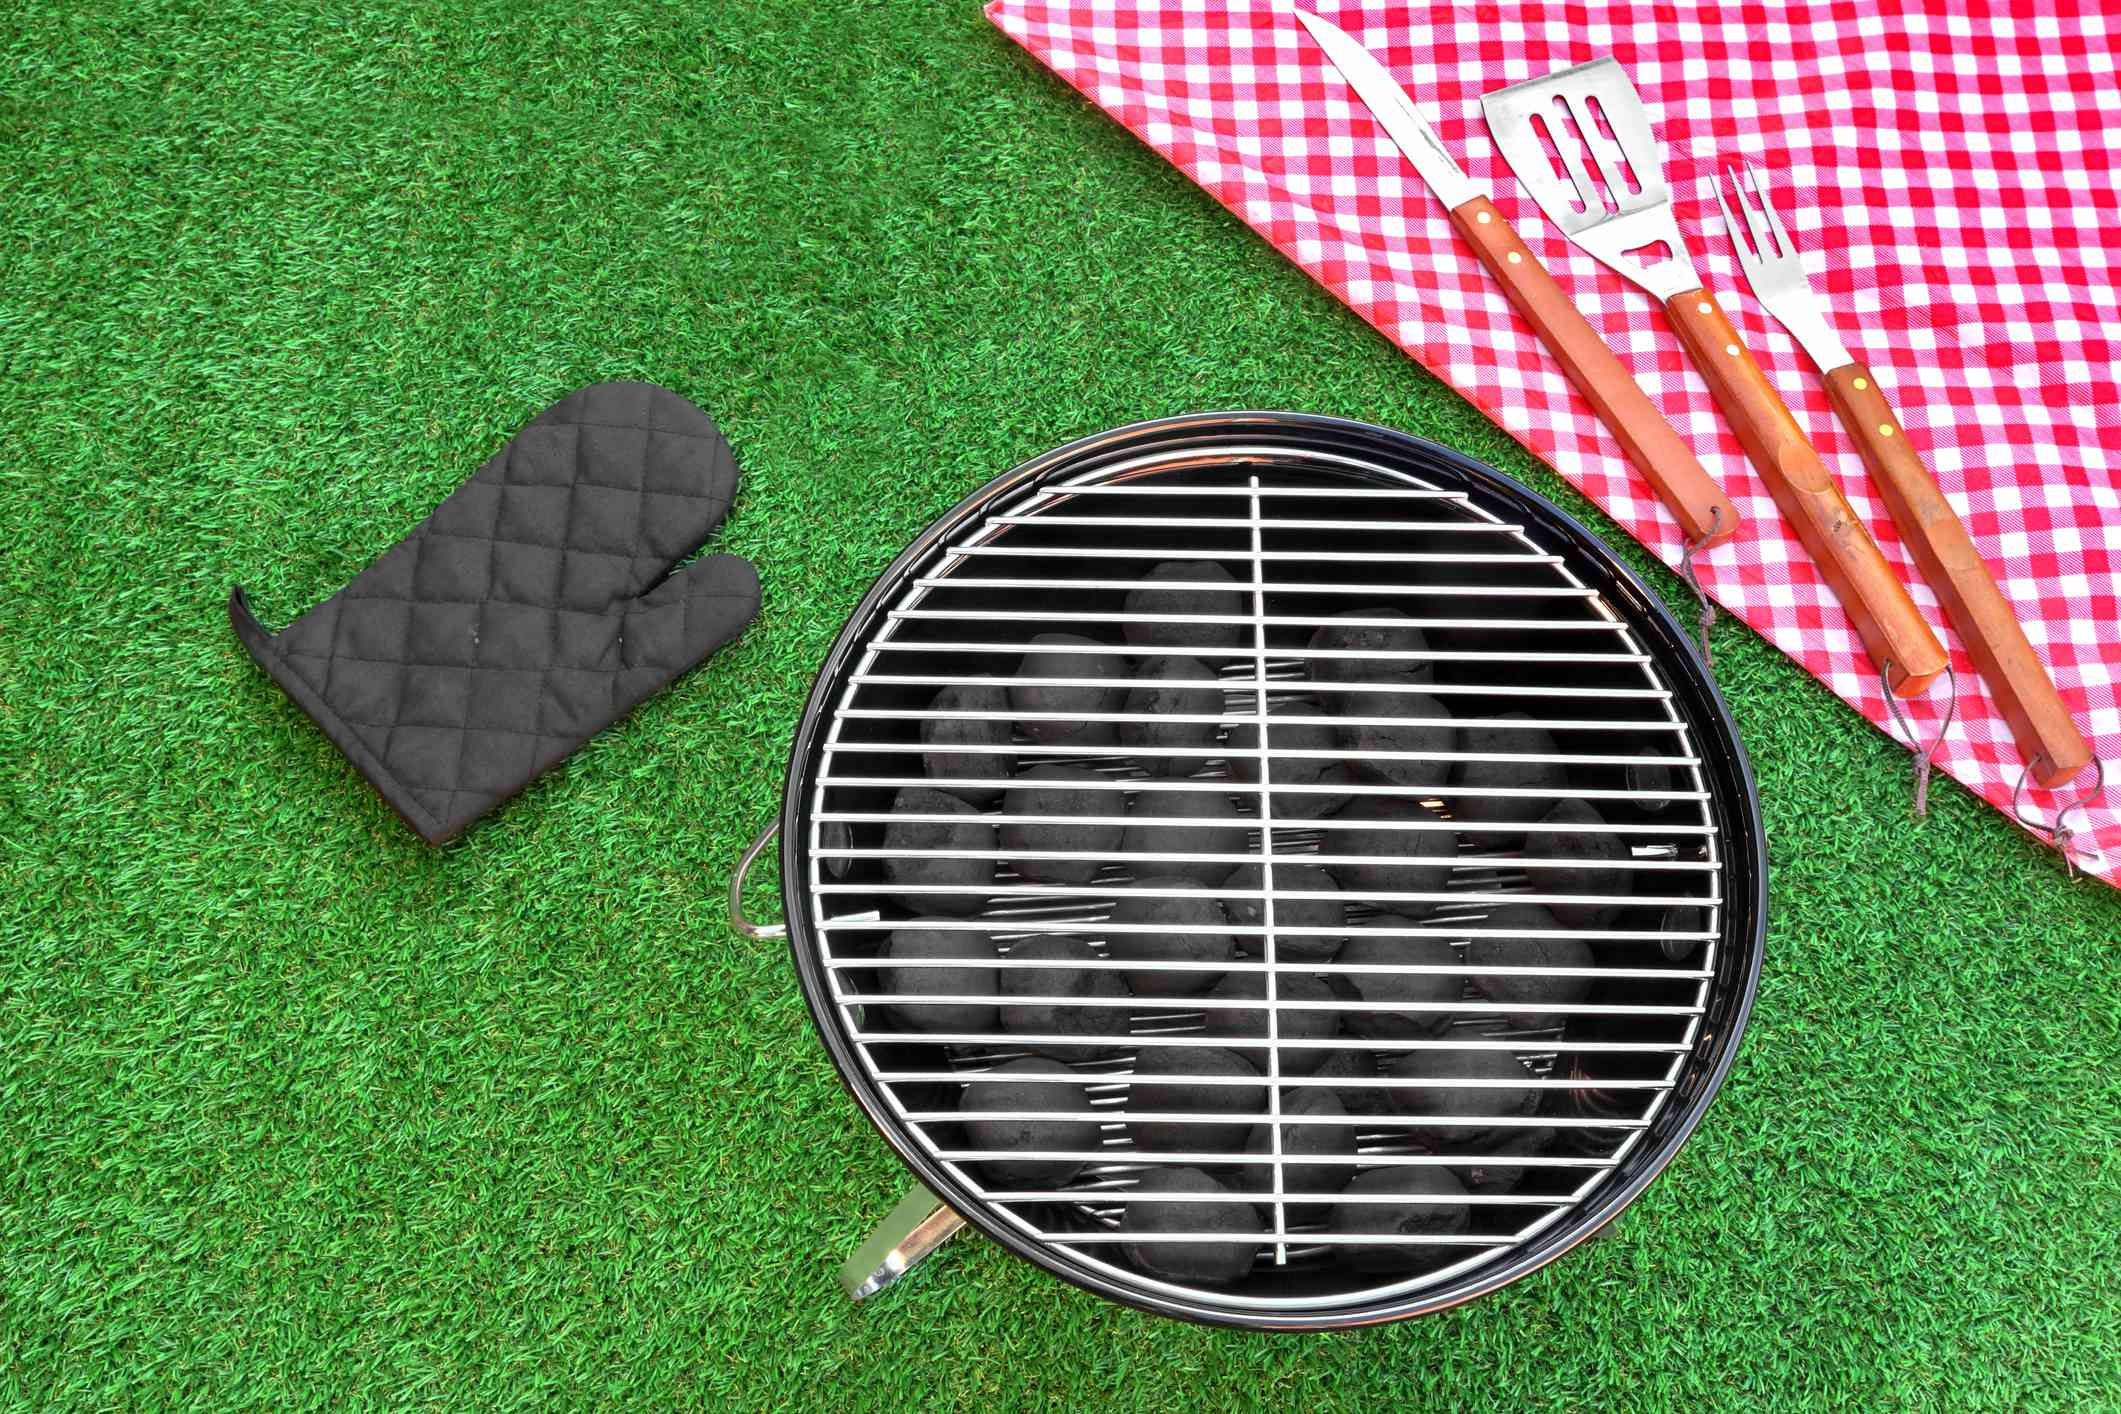 Summer Weekend Or Holiday BBQ Grill Party Or Picnic Concept